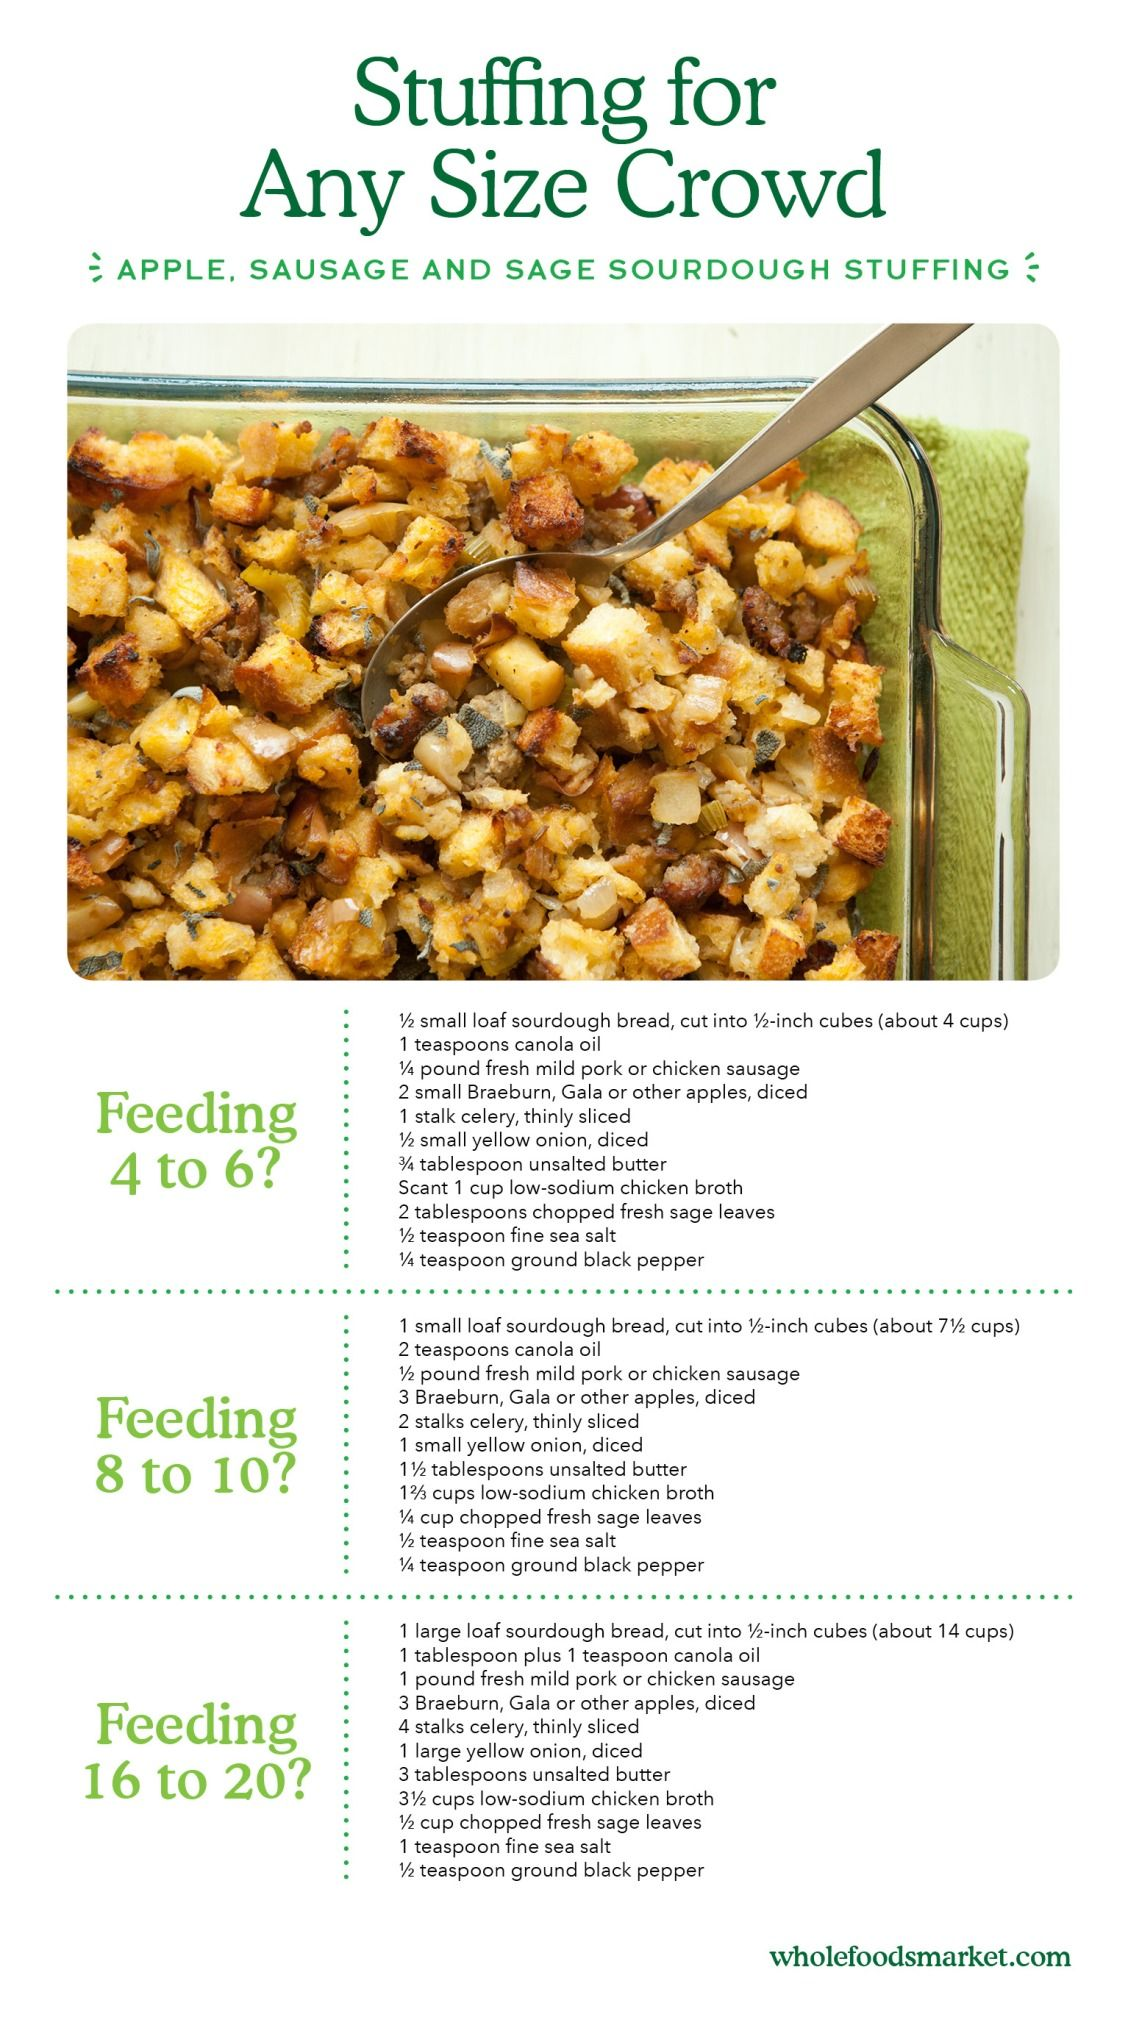 Apple, Sausage and Sage Sourdough Stuffing Recipe